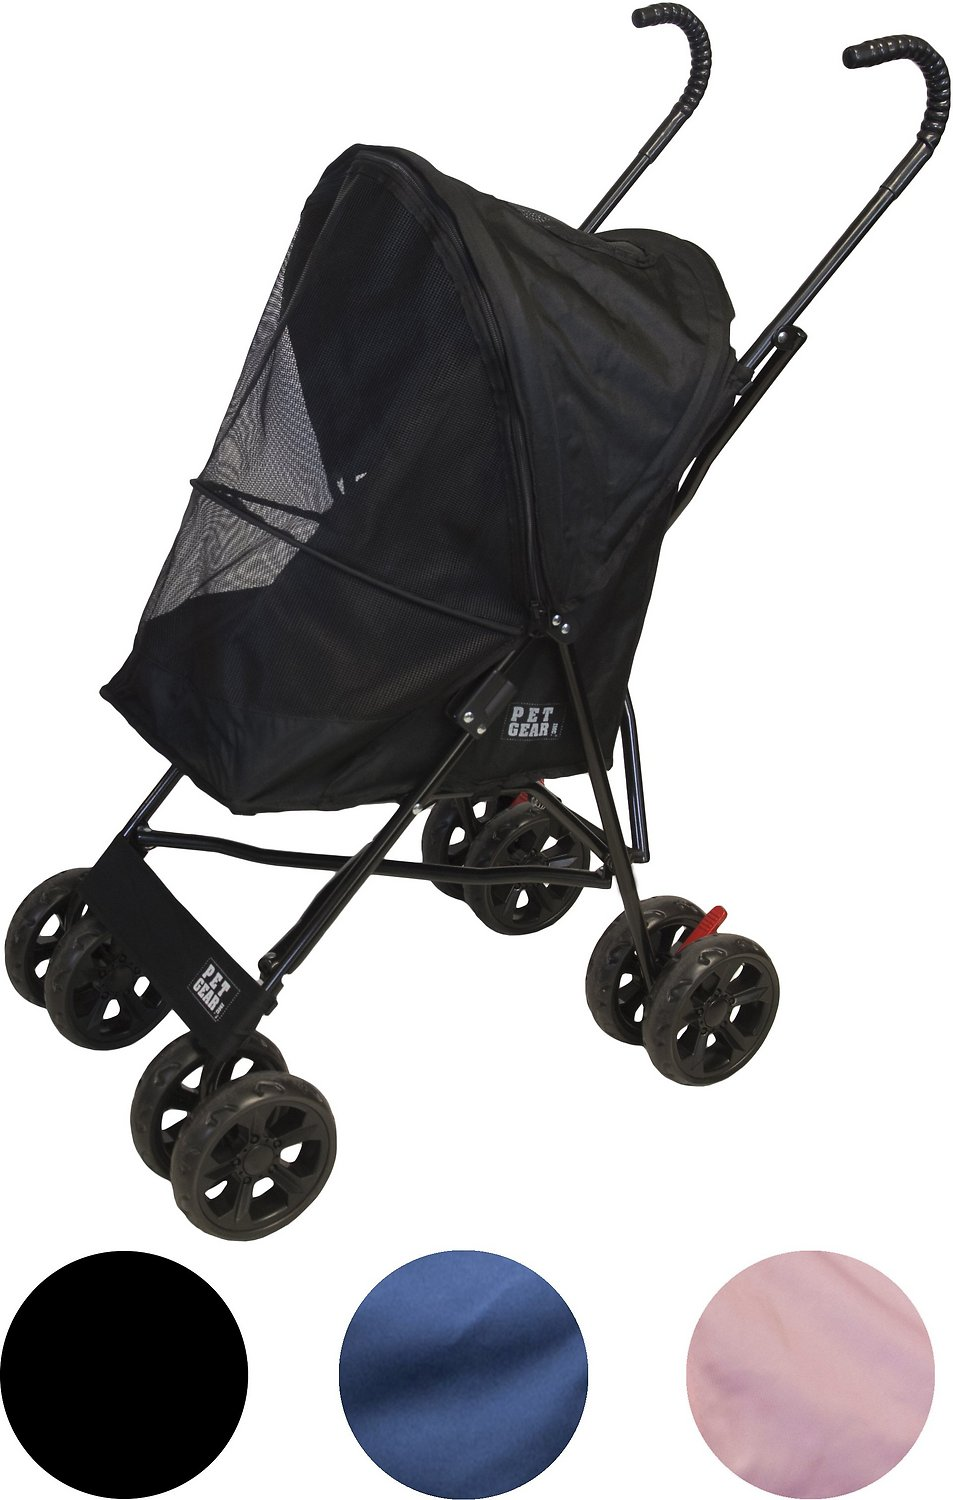 Pet Gear Travel Lite Pet Stroller, Black - Chewy.com